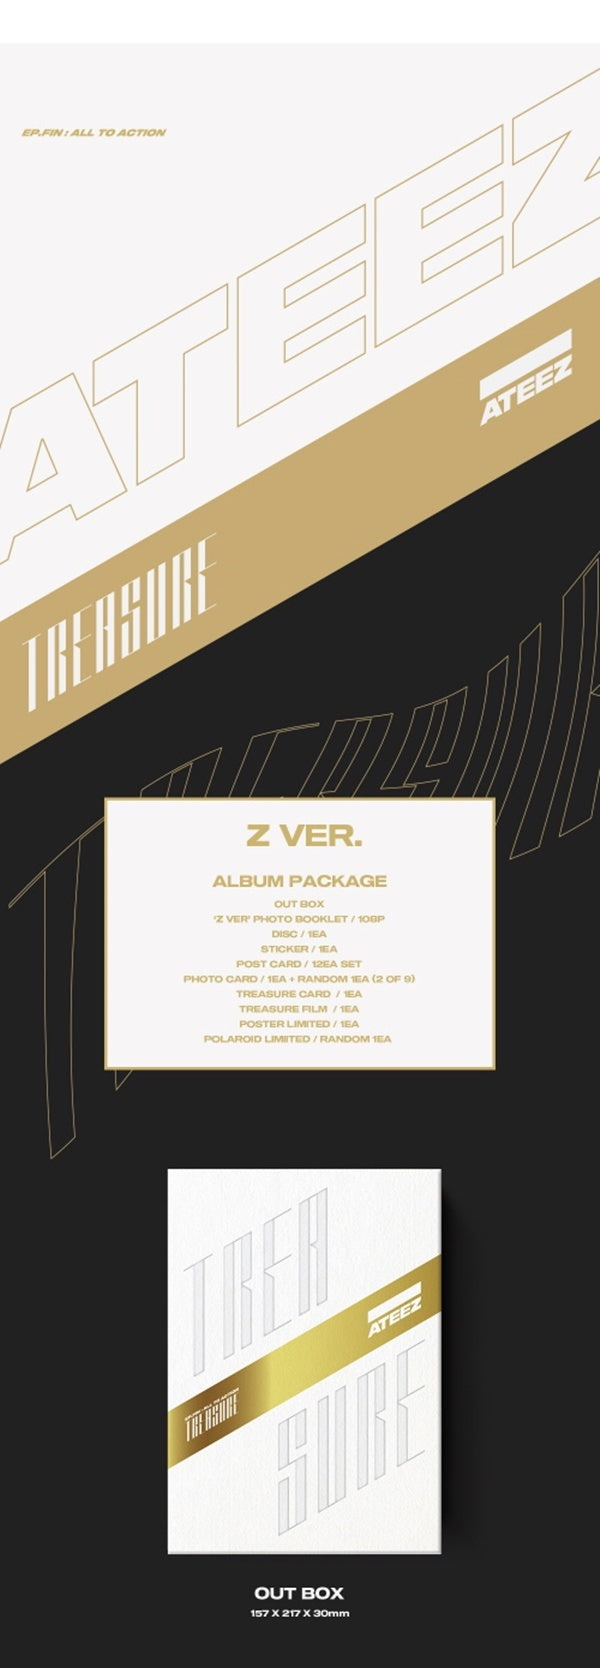 ATEEZ -Vol. 1 (Treasure Island Ep. Fin: All to Action) - J-Store Online